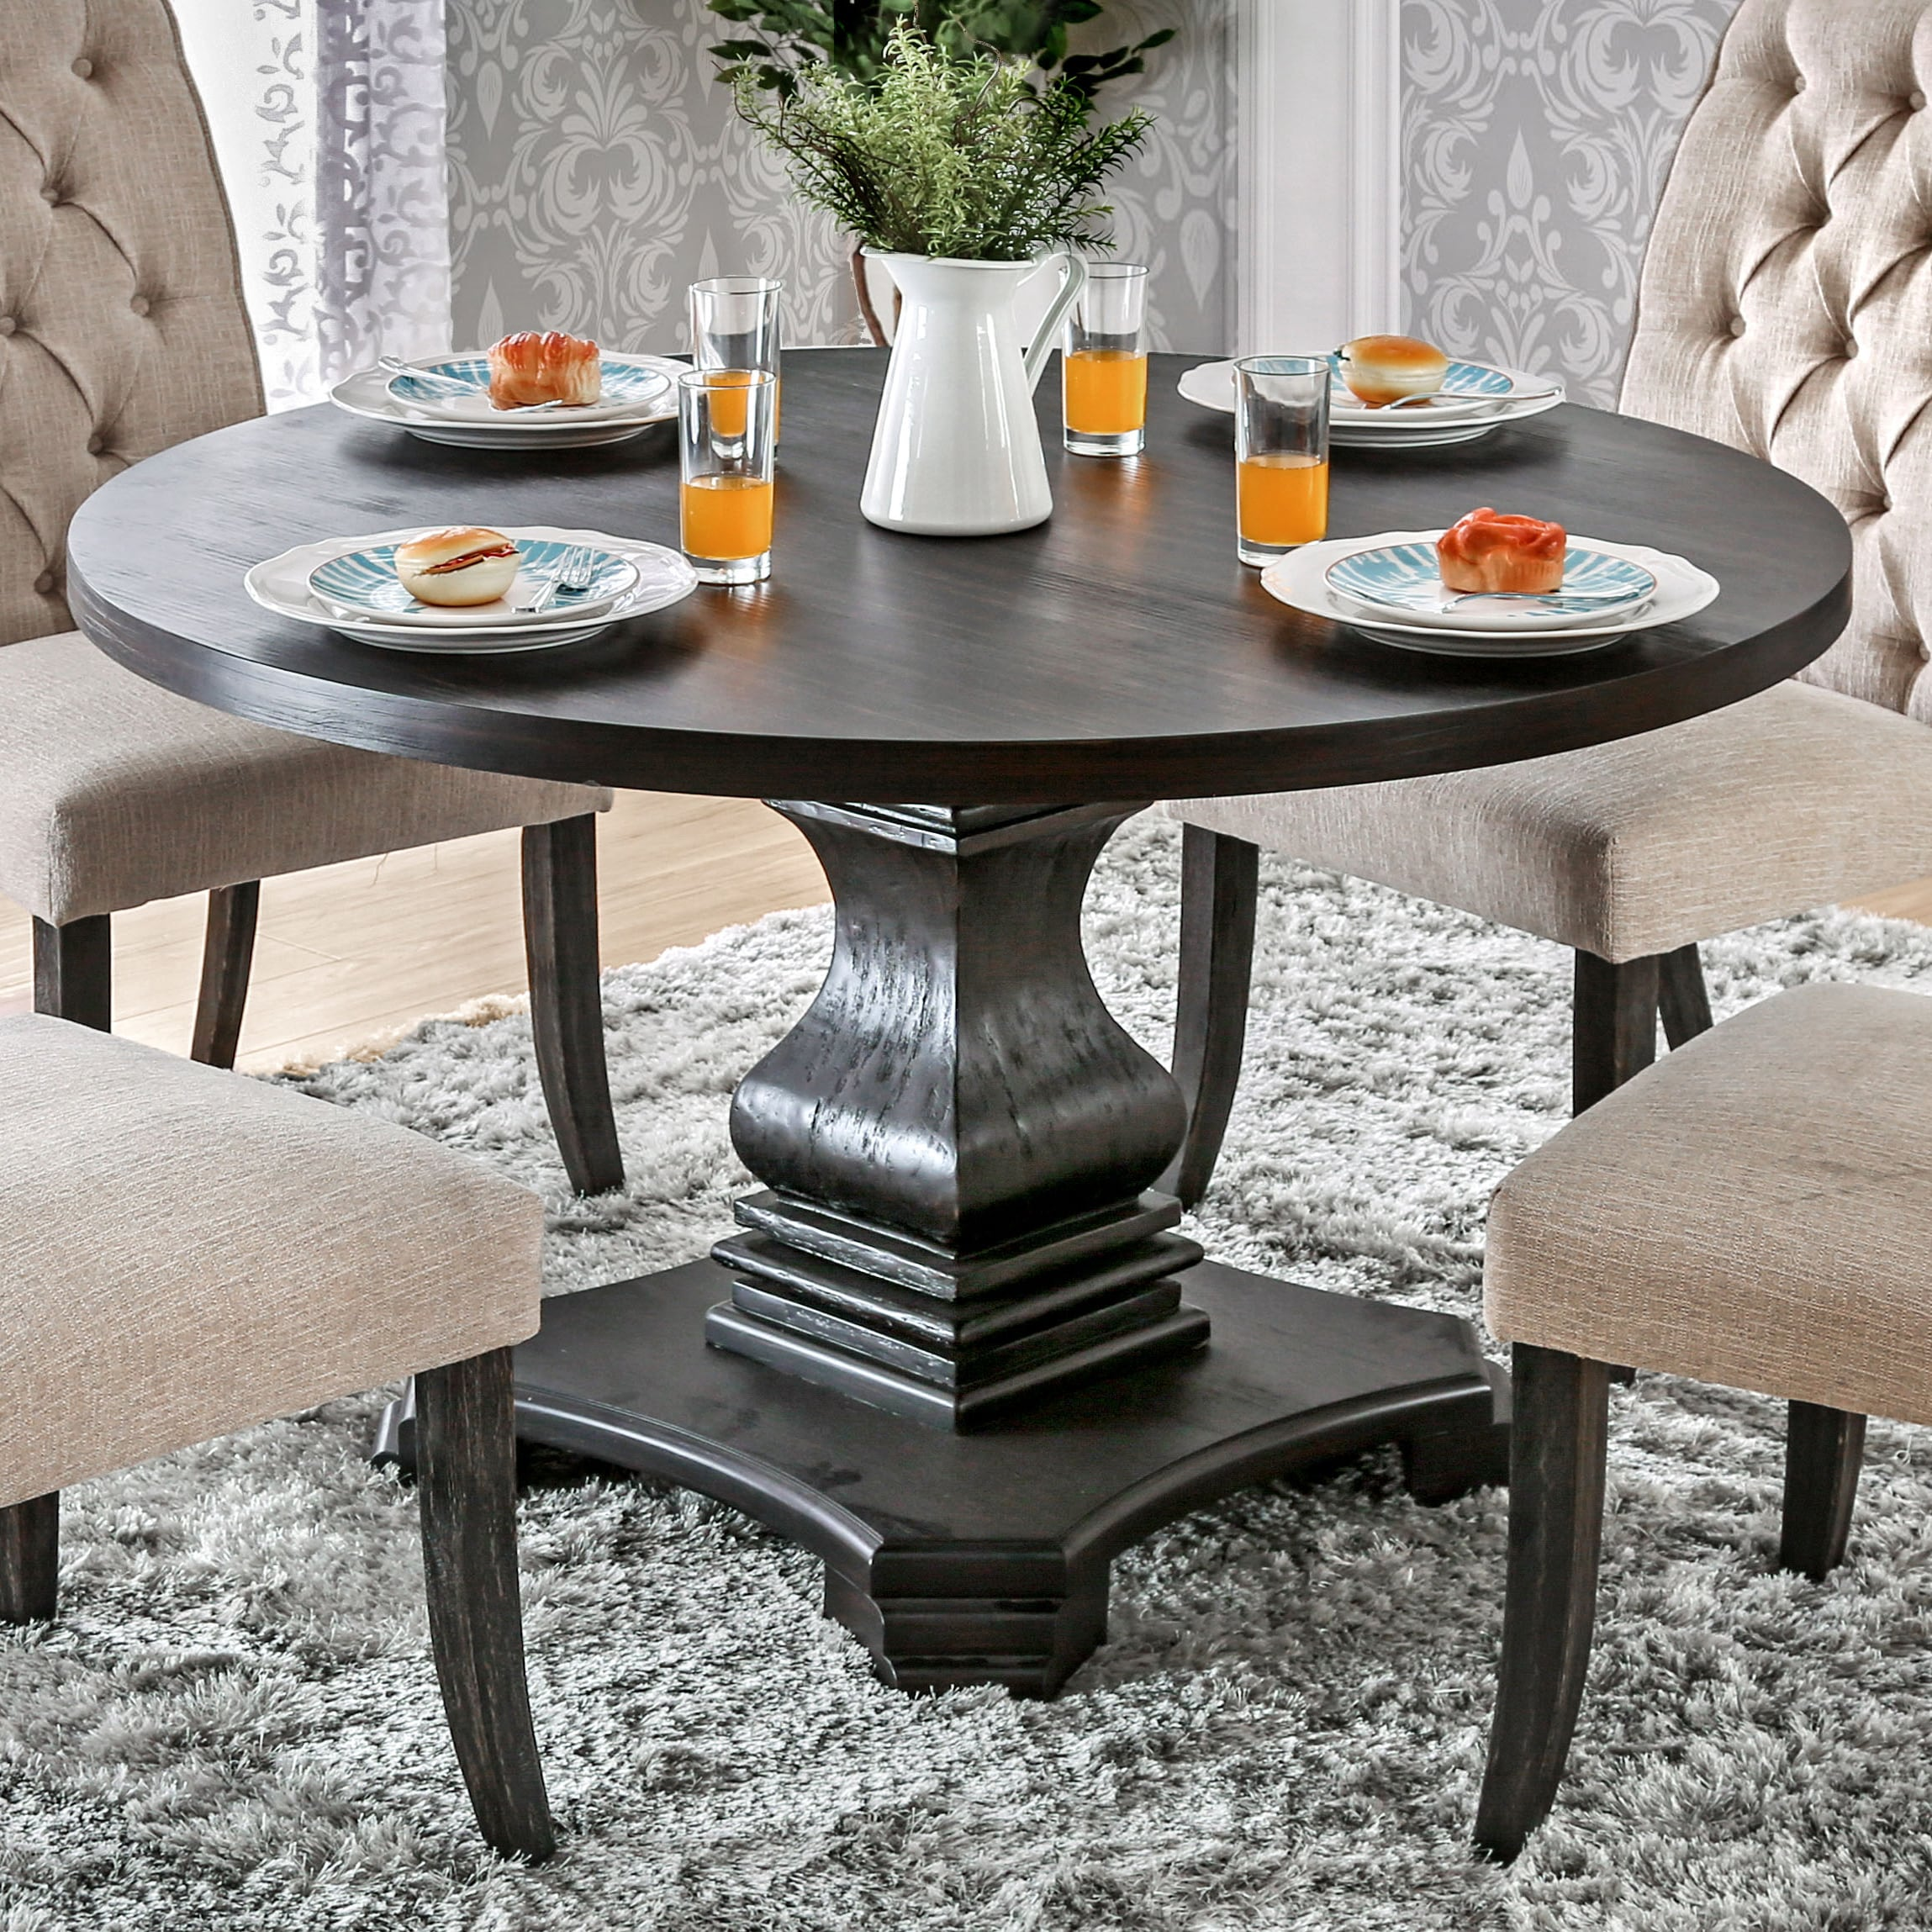 buy round kitchen dining room tables online at overstock com our rh overstock com Small Round Dining Room Sets Round Dining Room Furniture